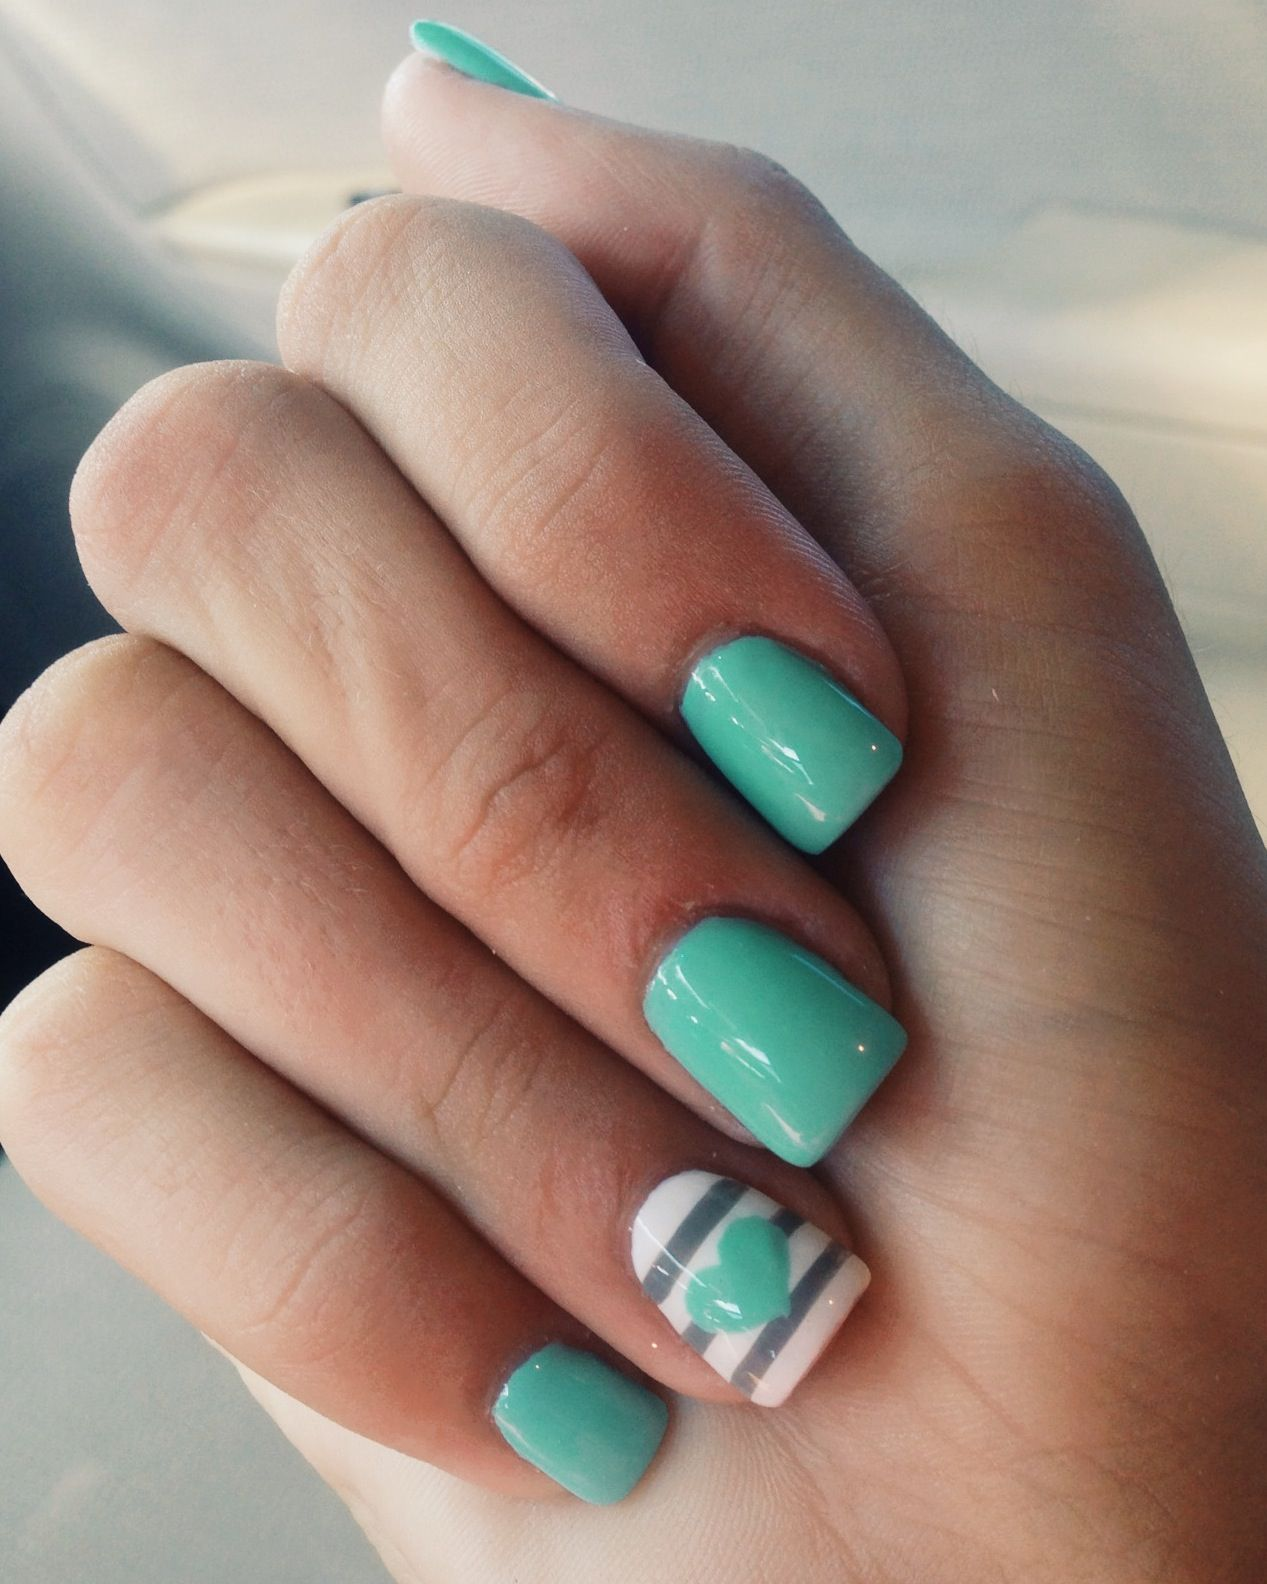 Mint green nails - Mint Green Nails Nails, Nails, Nails Pinterest Mint Green